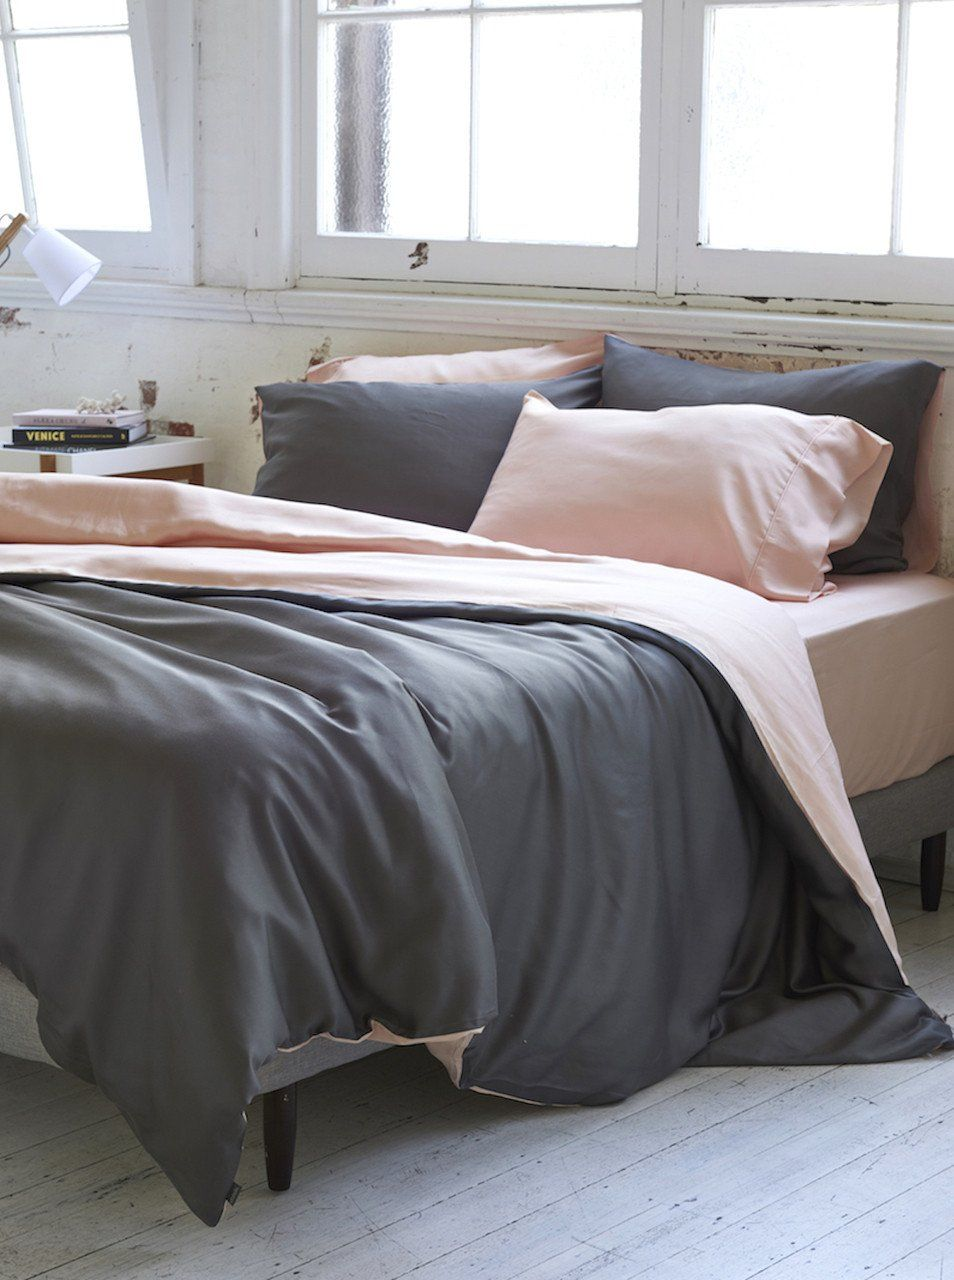 Rest Easy With This Reversible Soft Pink And Grey Duvet Set Made With 100 Organic Bamboo Lyocell These Are Great Bed Linens Luxury Bedding Brands Bed Sheets